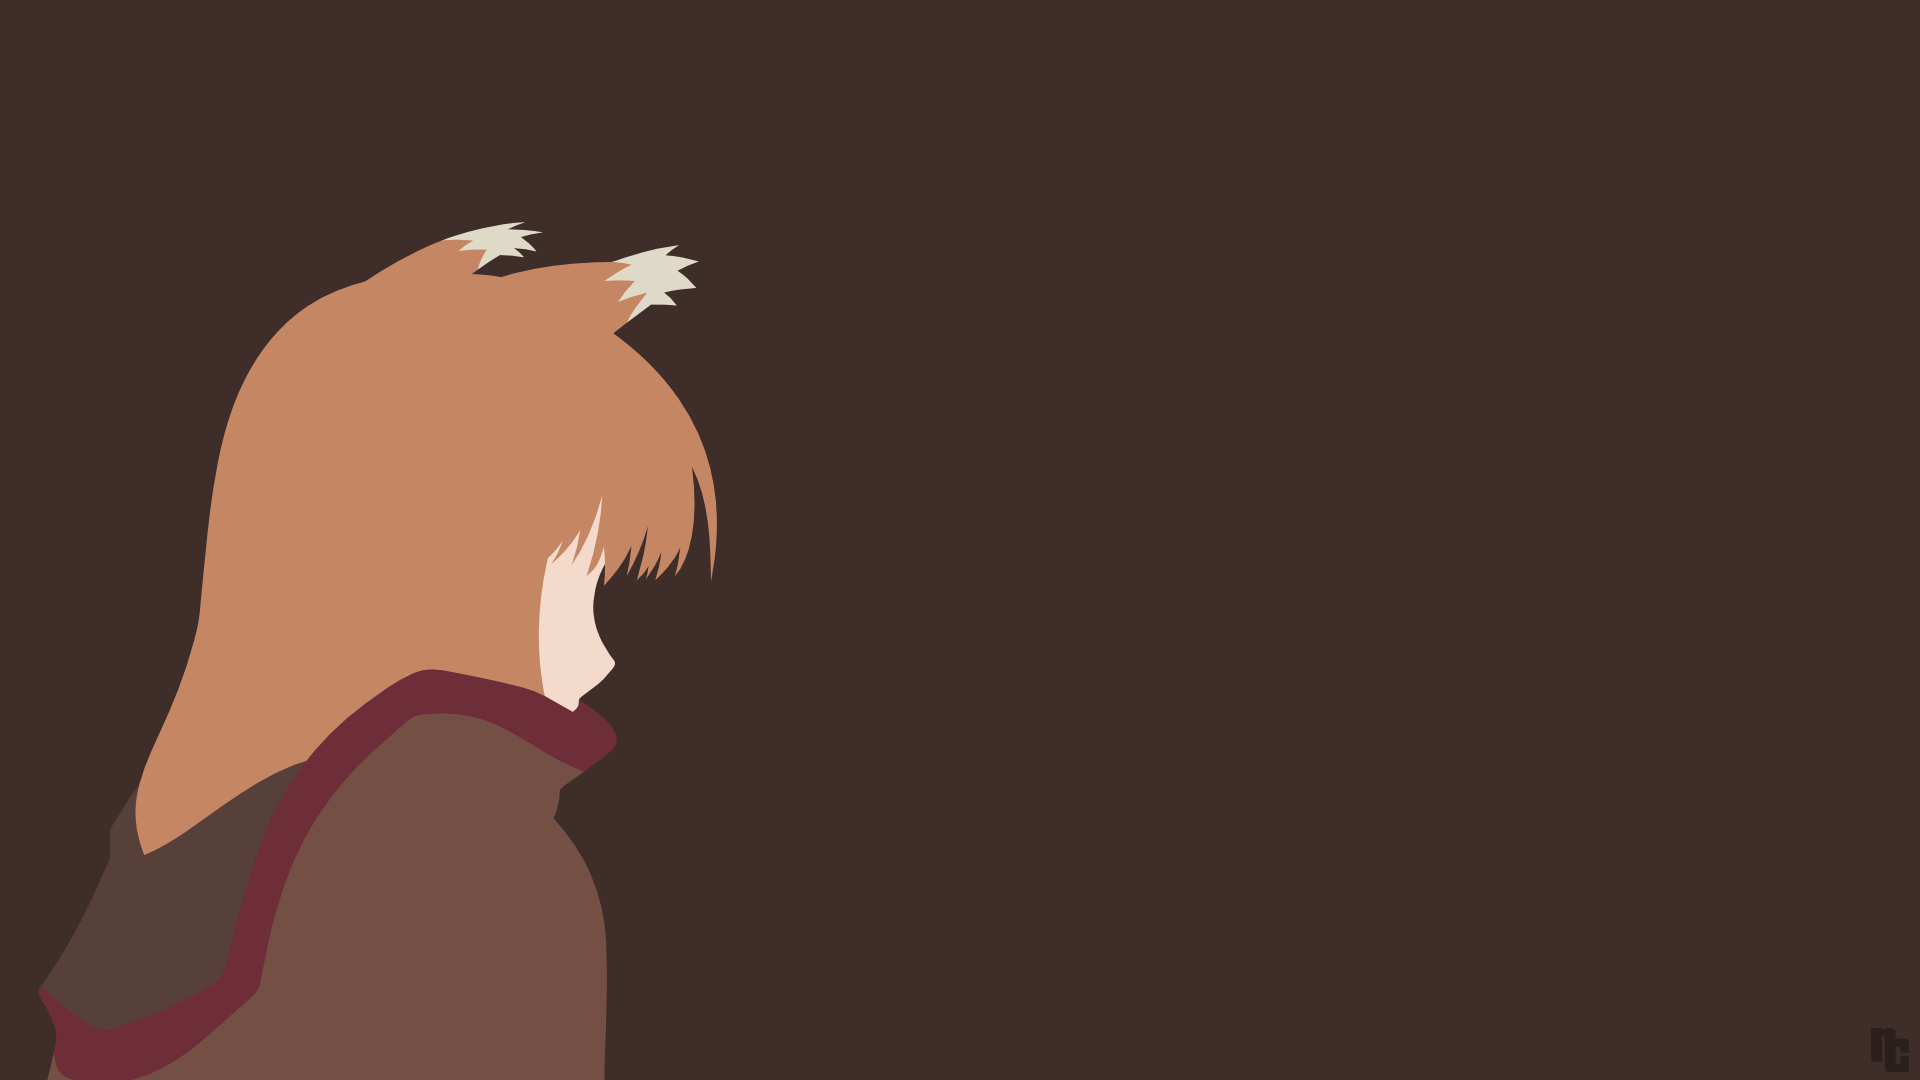 Holo Spice And Wolf Minimalist Wallpaper By Greenmapple